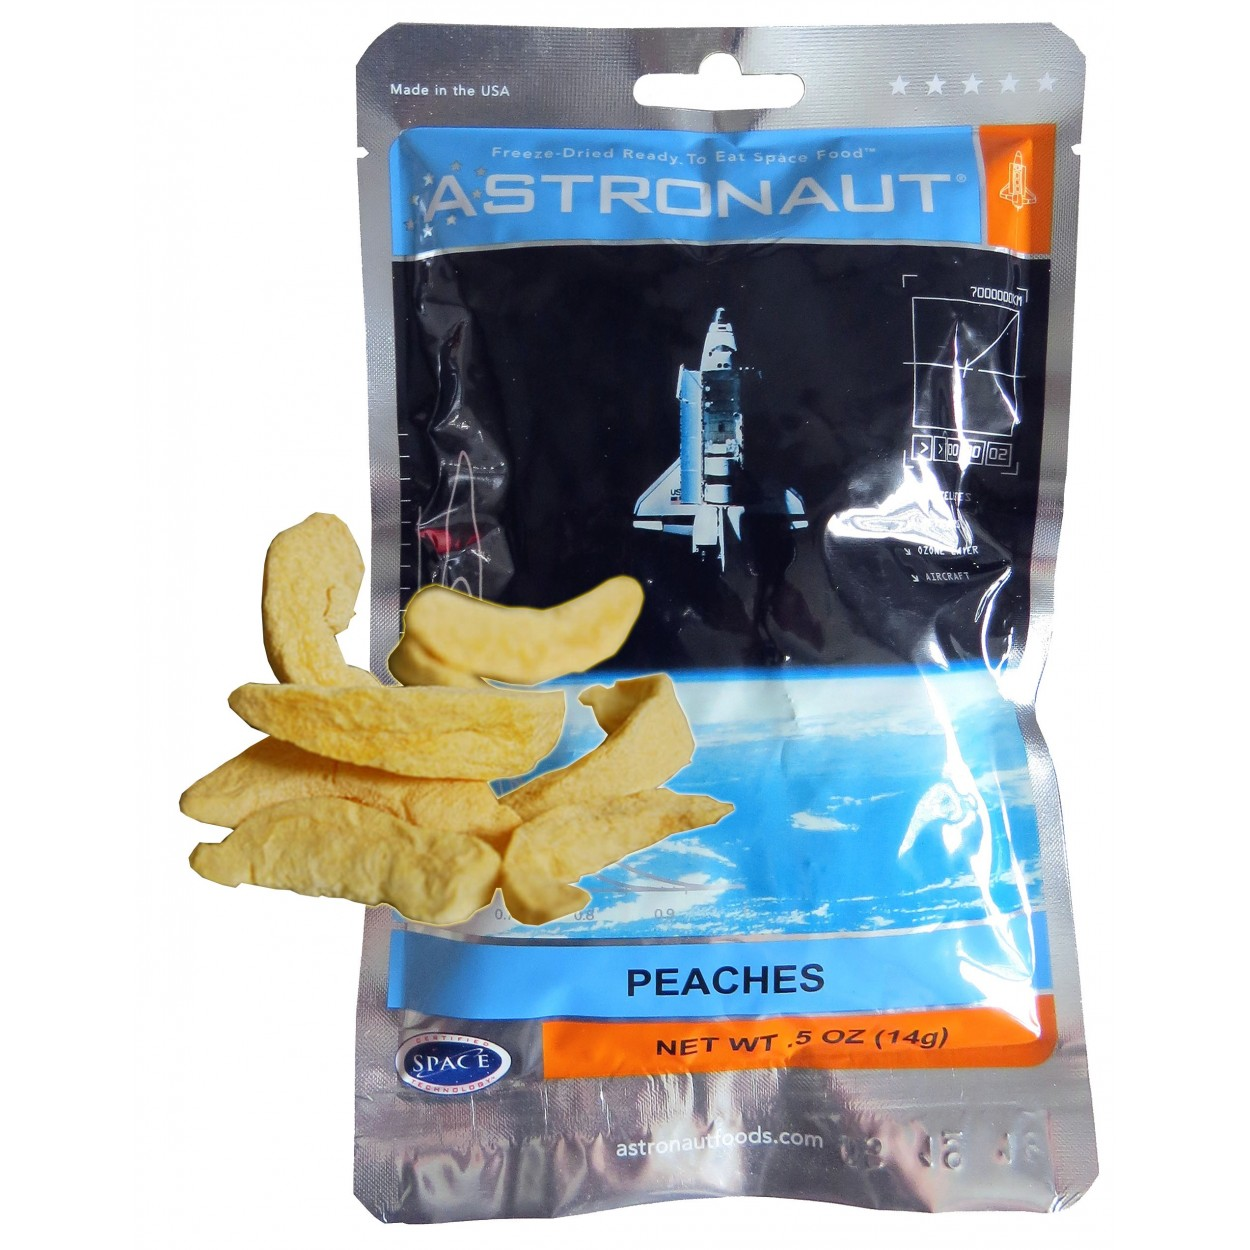 Astronaut food: you'll eat that too